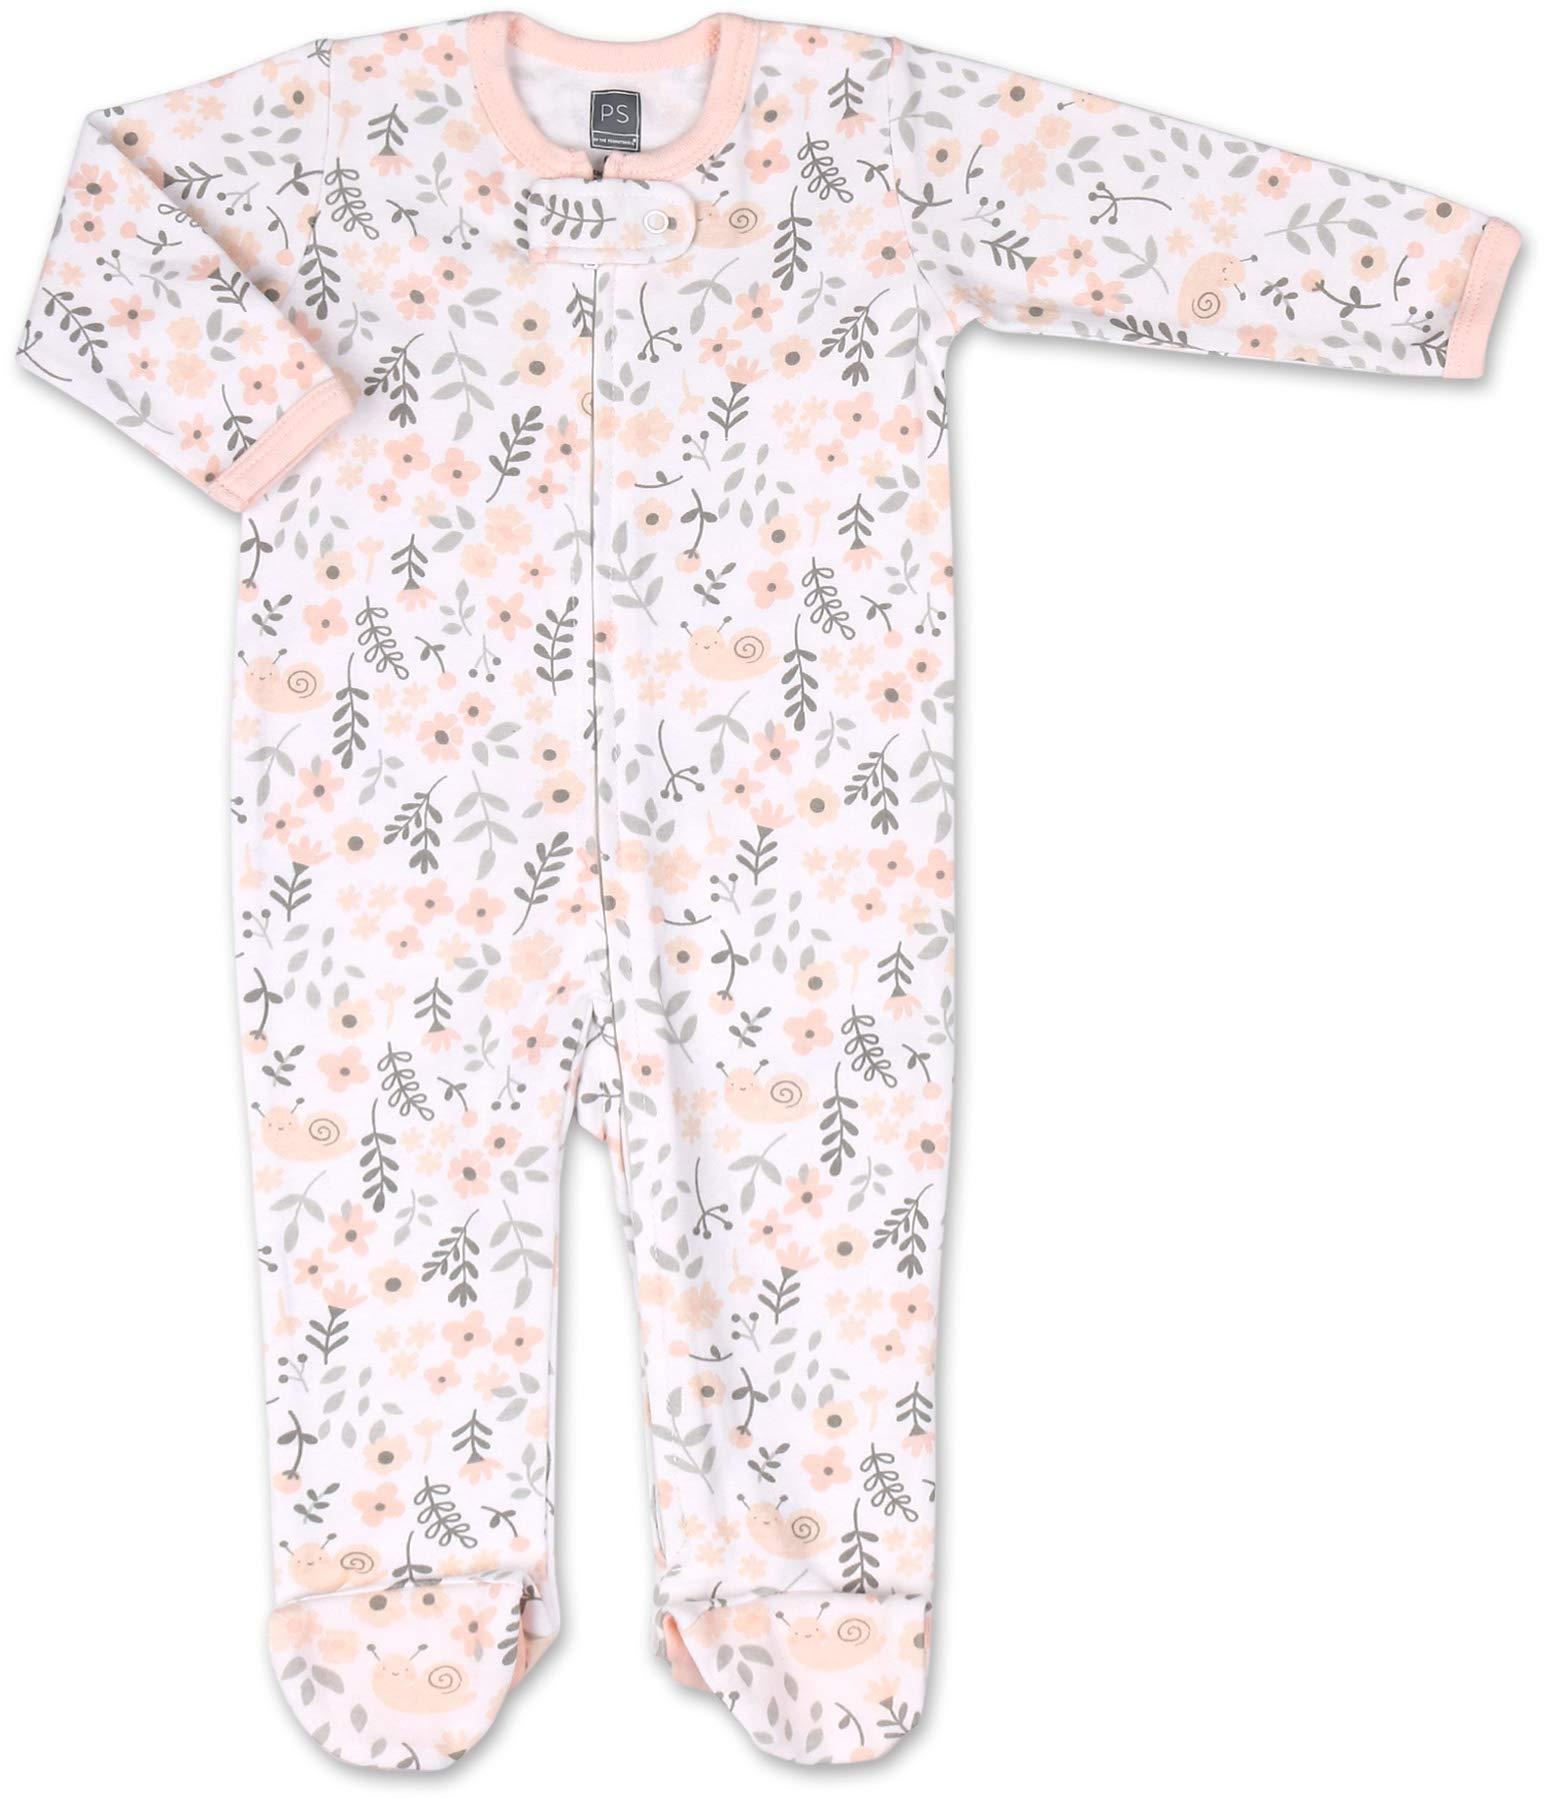 The Peanutshell Baby Sleeper Set for Baby Girls | 3 Pack in Pink Floral, Blush, & Stars | Newborn to 9M Footed Girl Pajamas